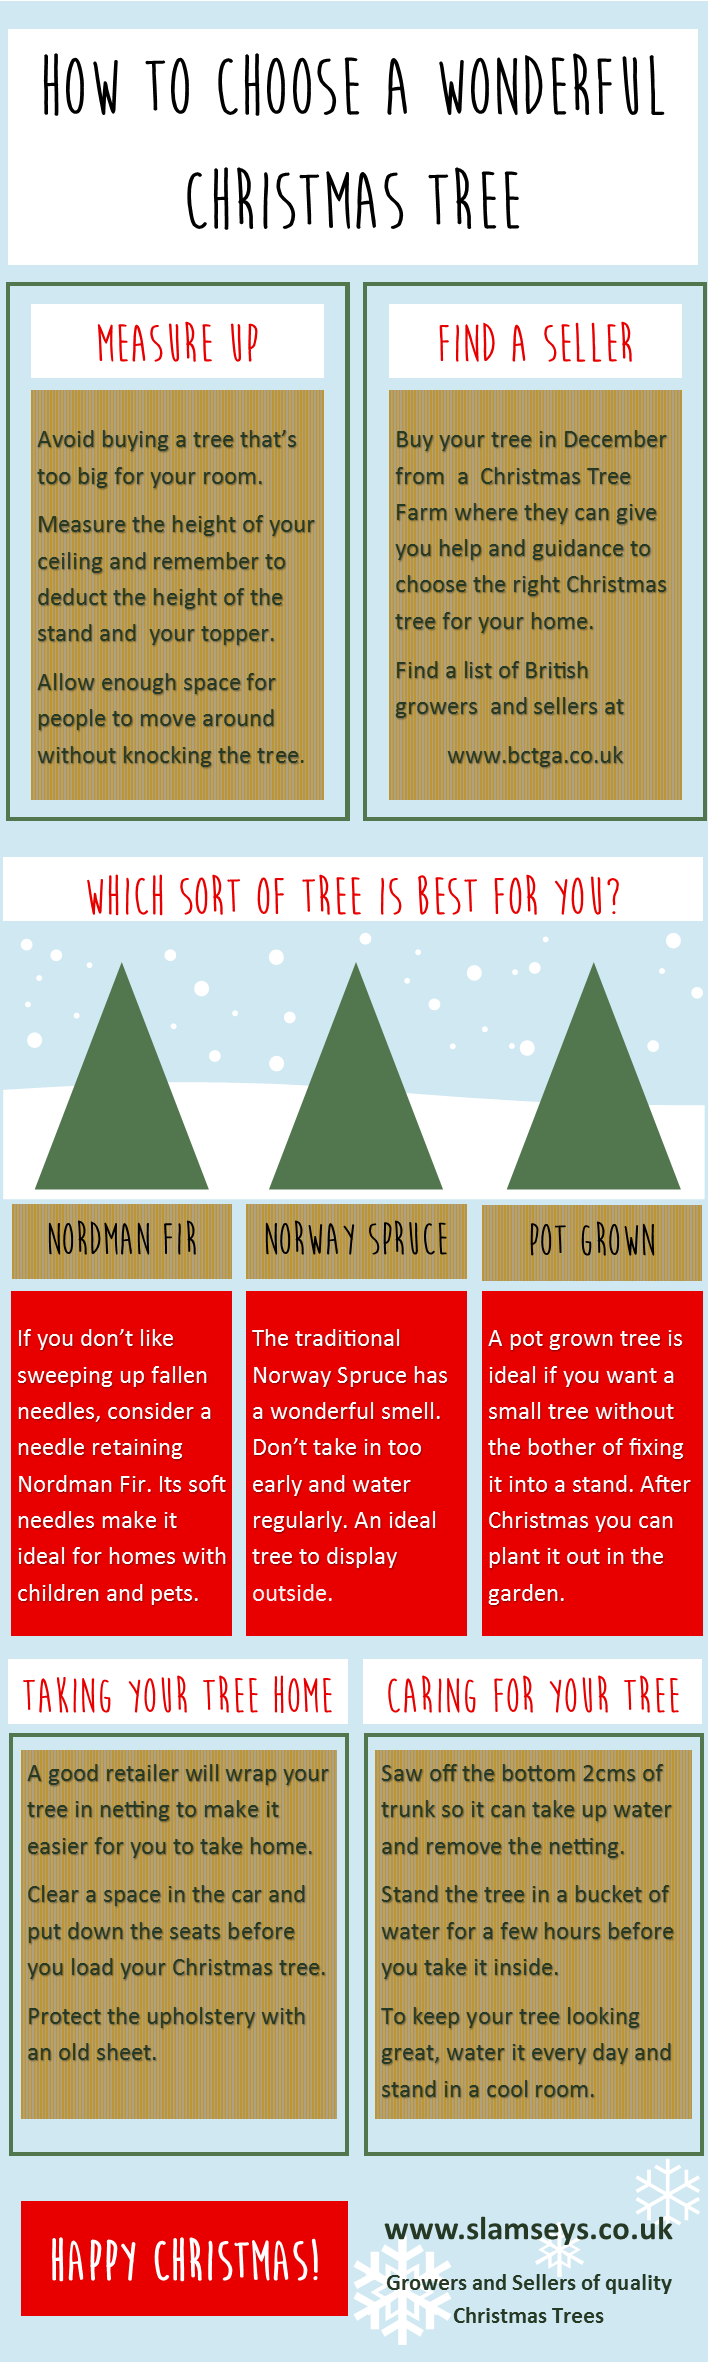 How to choose a wonderful Christmas Tree infographic